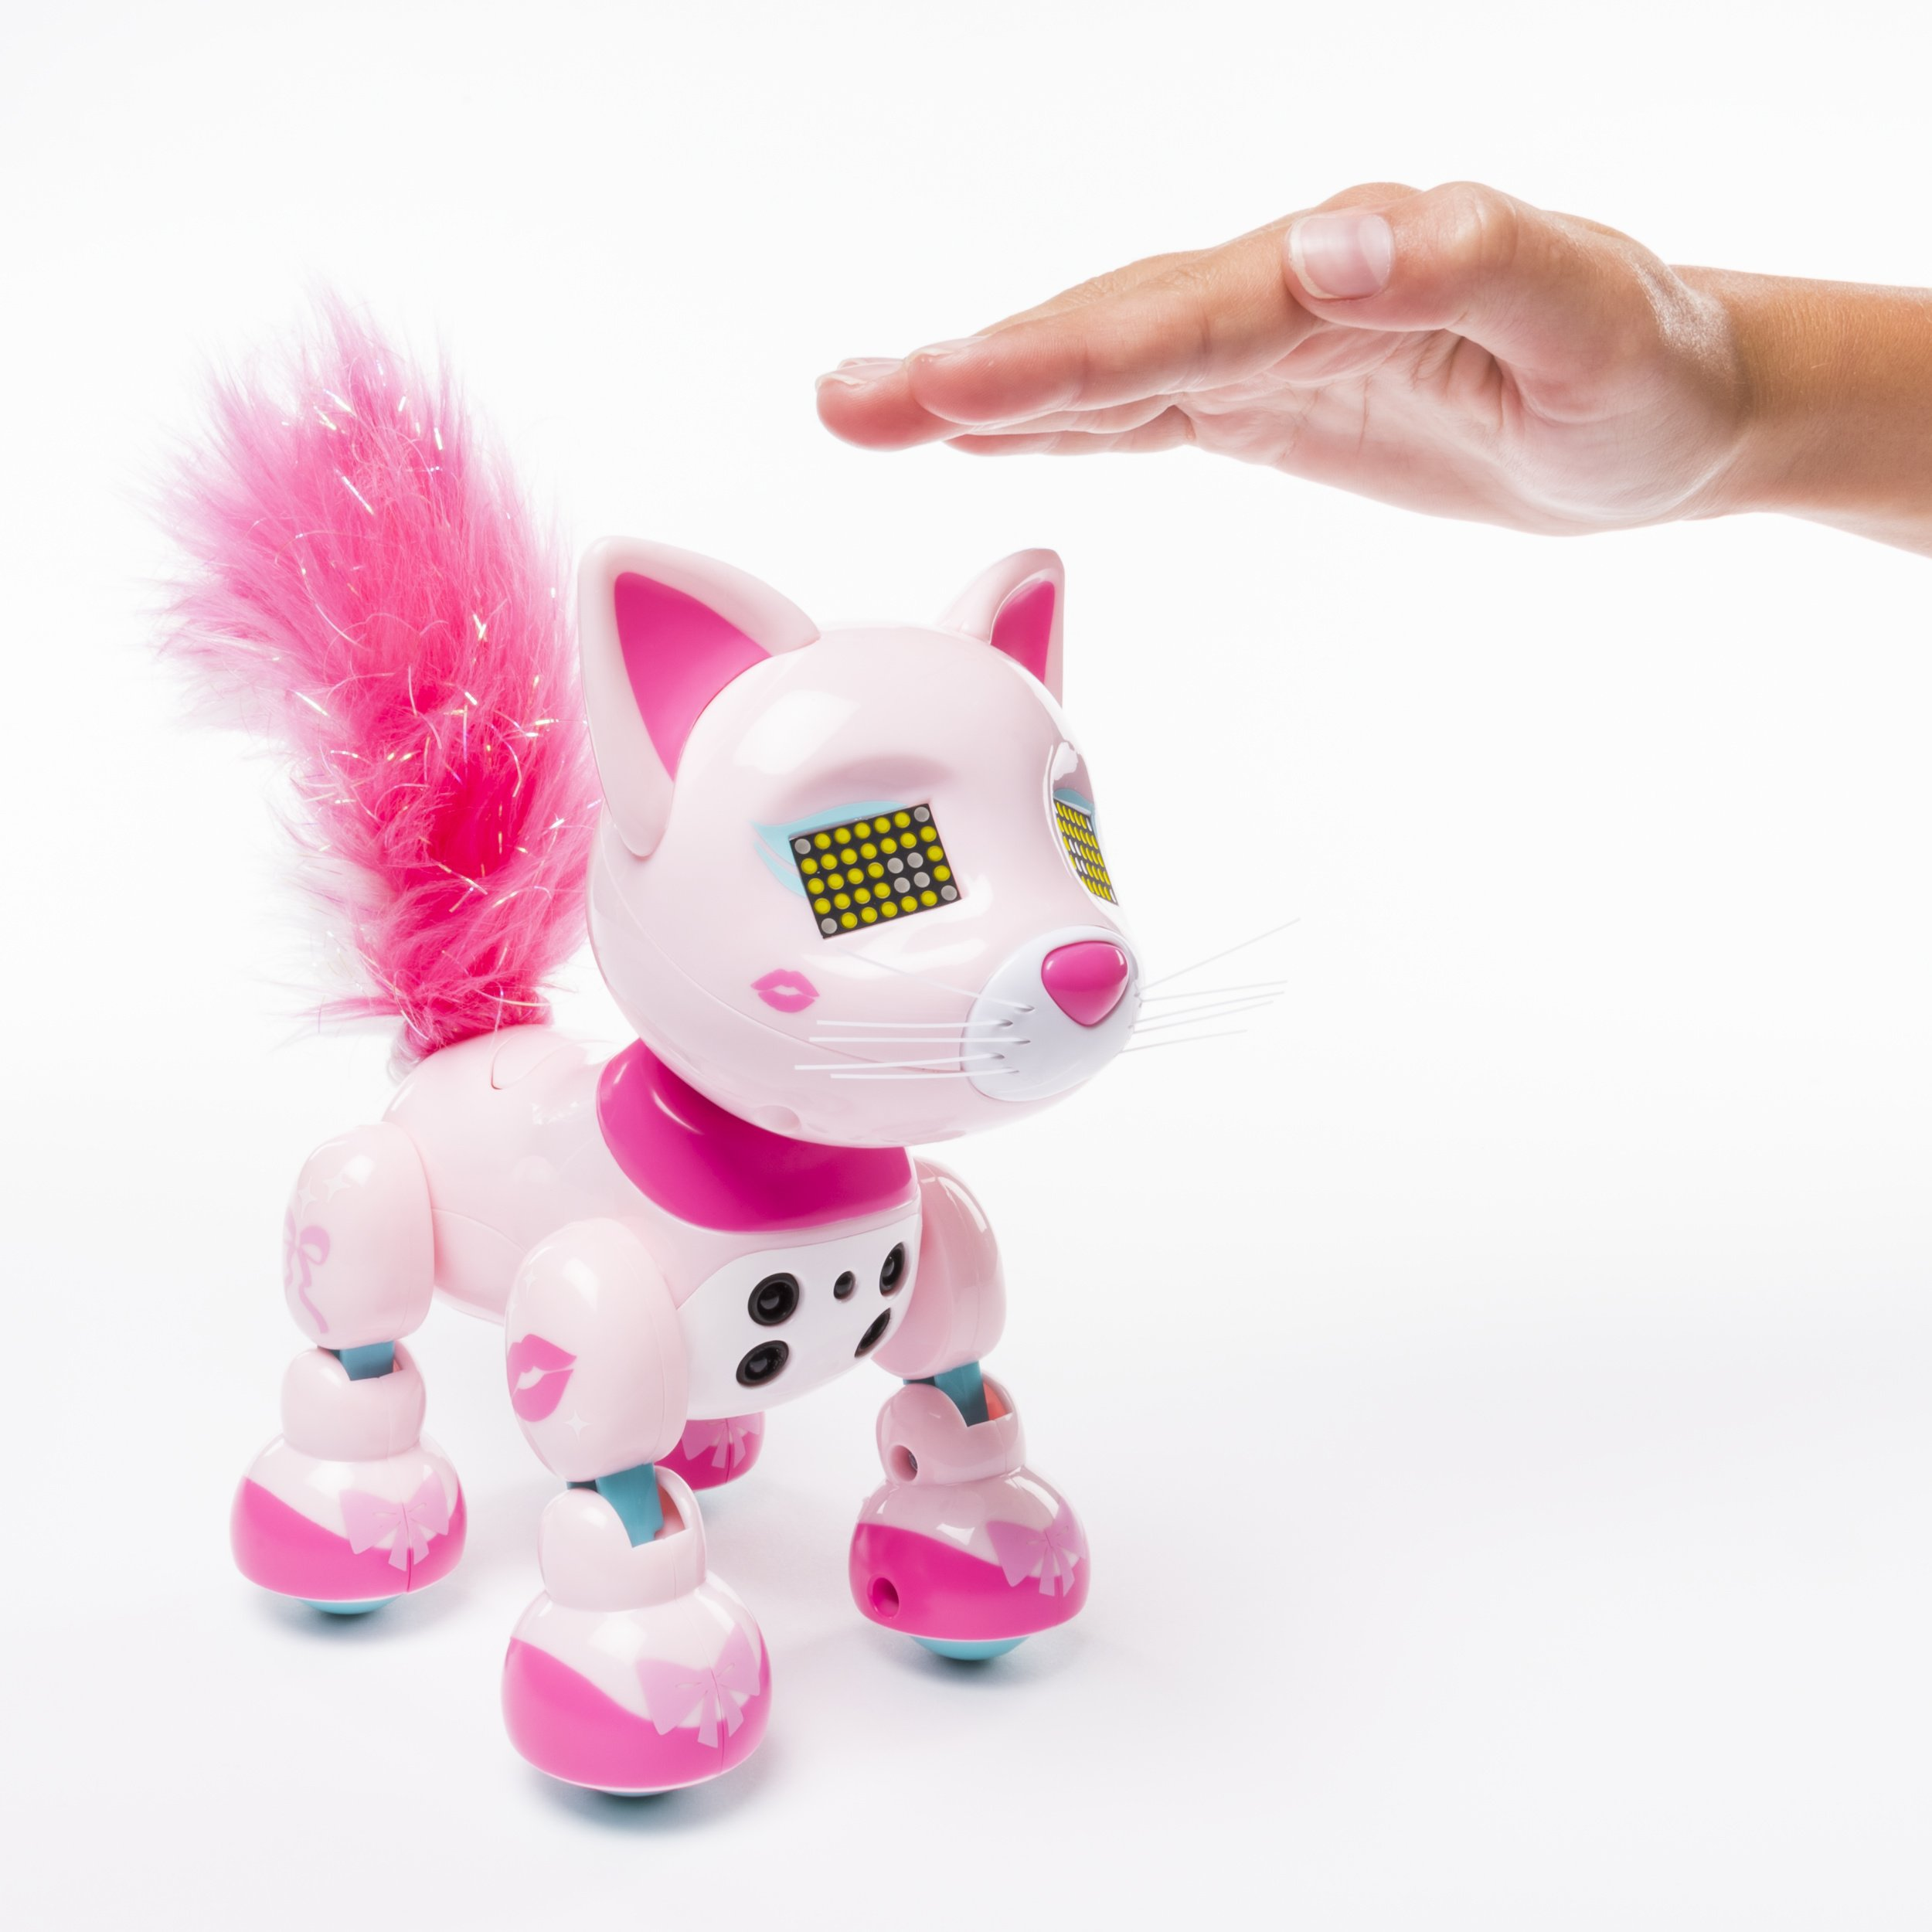 Zoomer Meowzies, Chic, Interactive Kitten with Lights, Sounds and Sensors by Zoomer (Image #7)